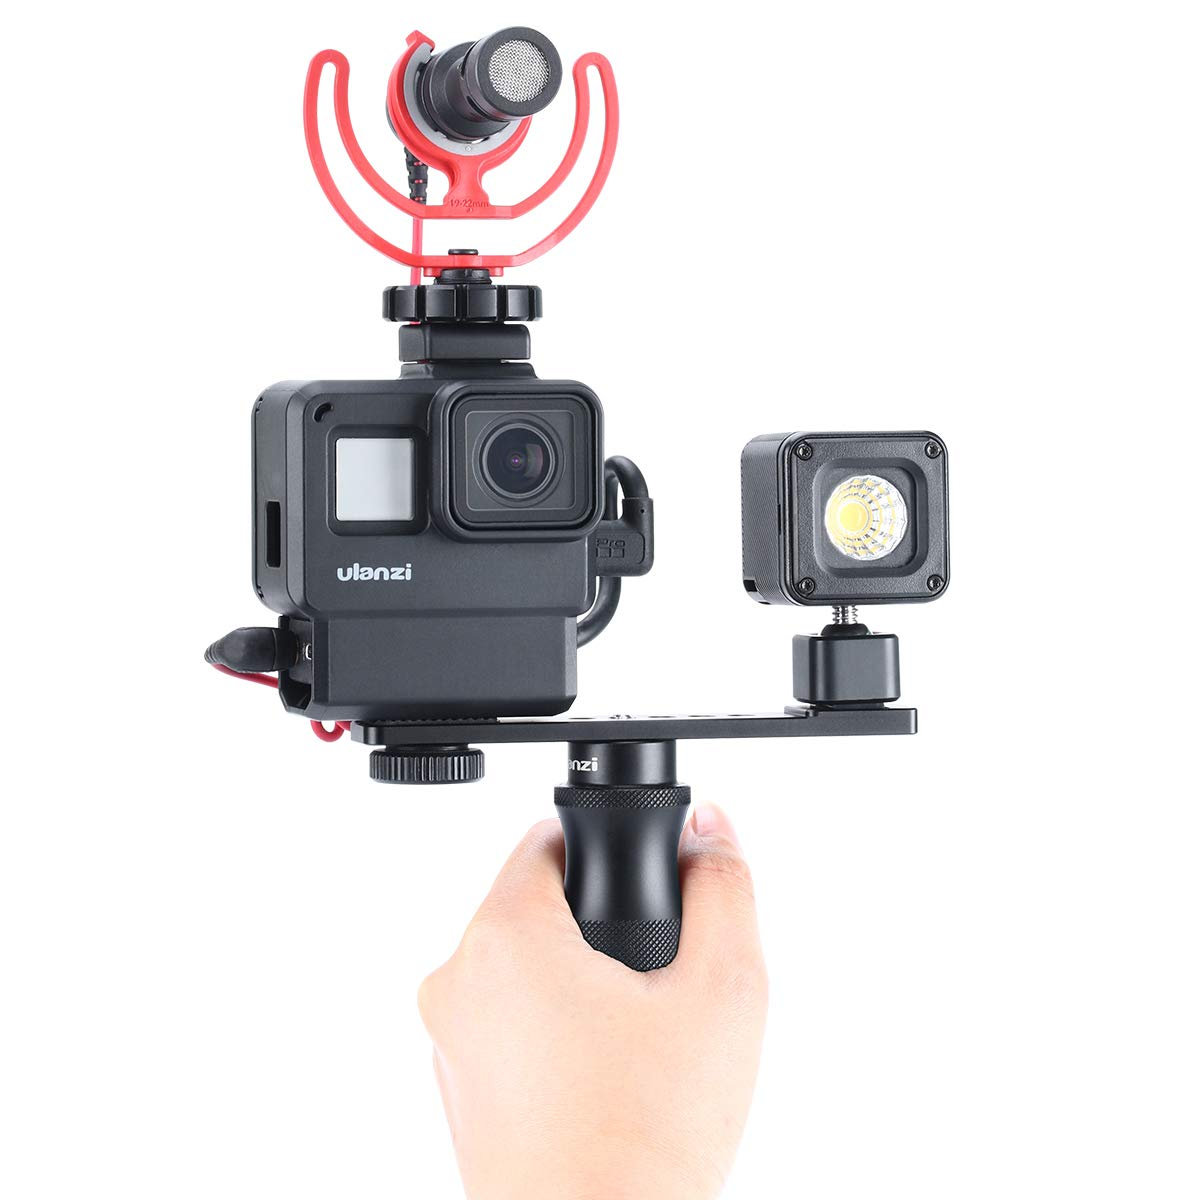 ULANZI PT-5 Vlog Cold Shoe Bracket Extension Bar Apply for Microphone LED Video Light w 1//4 Tripod Screw for Sony A6400 6300 6500 6000 Nikon Canon G7X II III Mirrorless Camera Vlogging Accessories